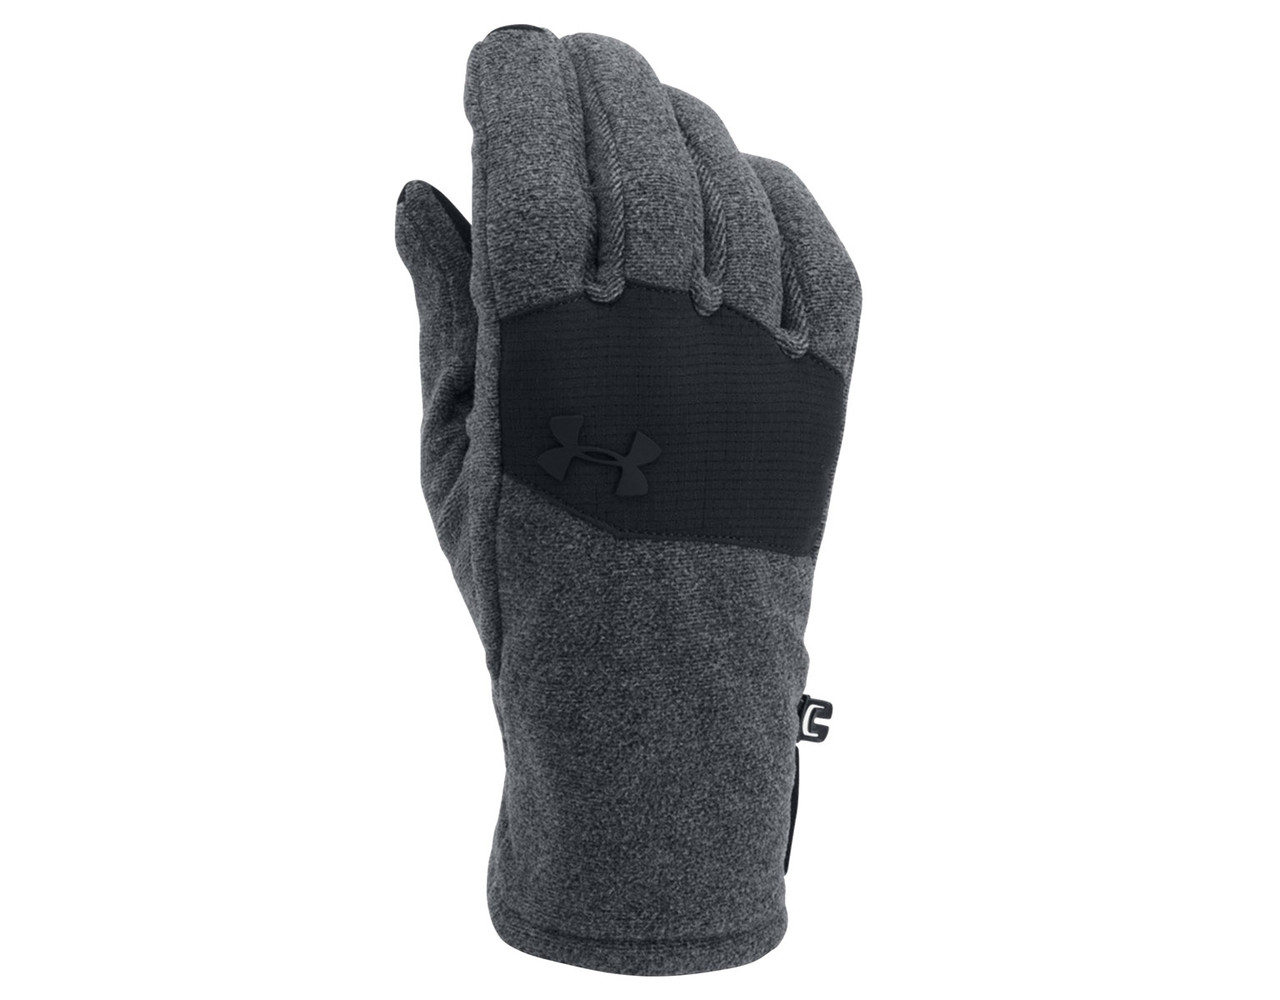 Ua infrared review